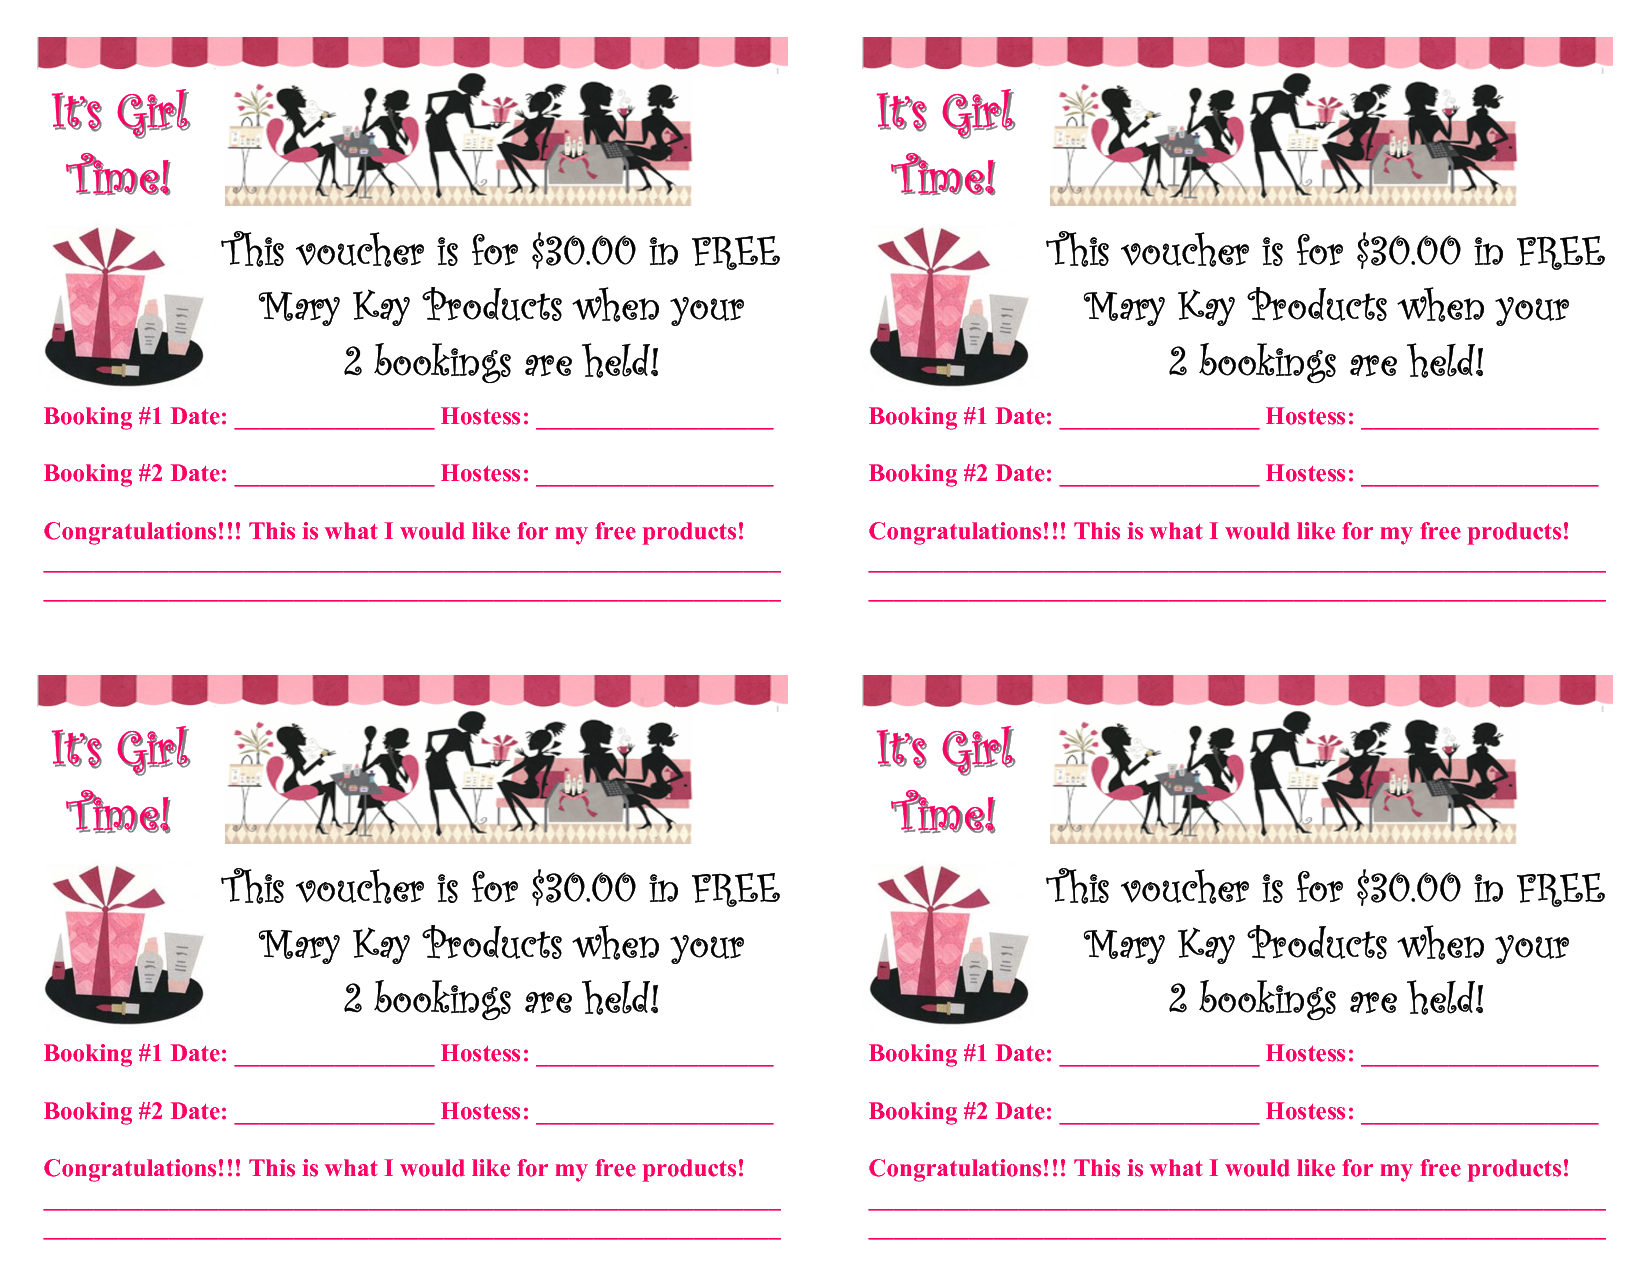 Mary kay flyers hostess rewards booking voucher 07pub read mary kay flyers hostess rewards booking voucher 07pub read only yadclub Choice Image